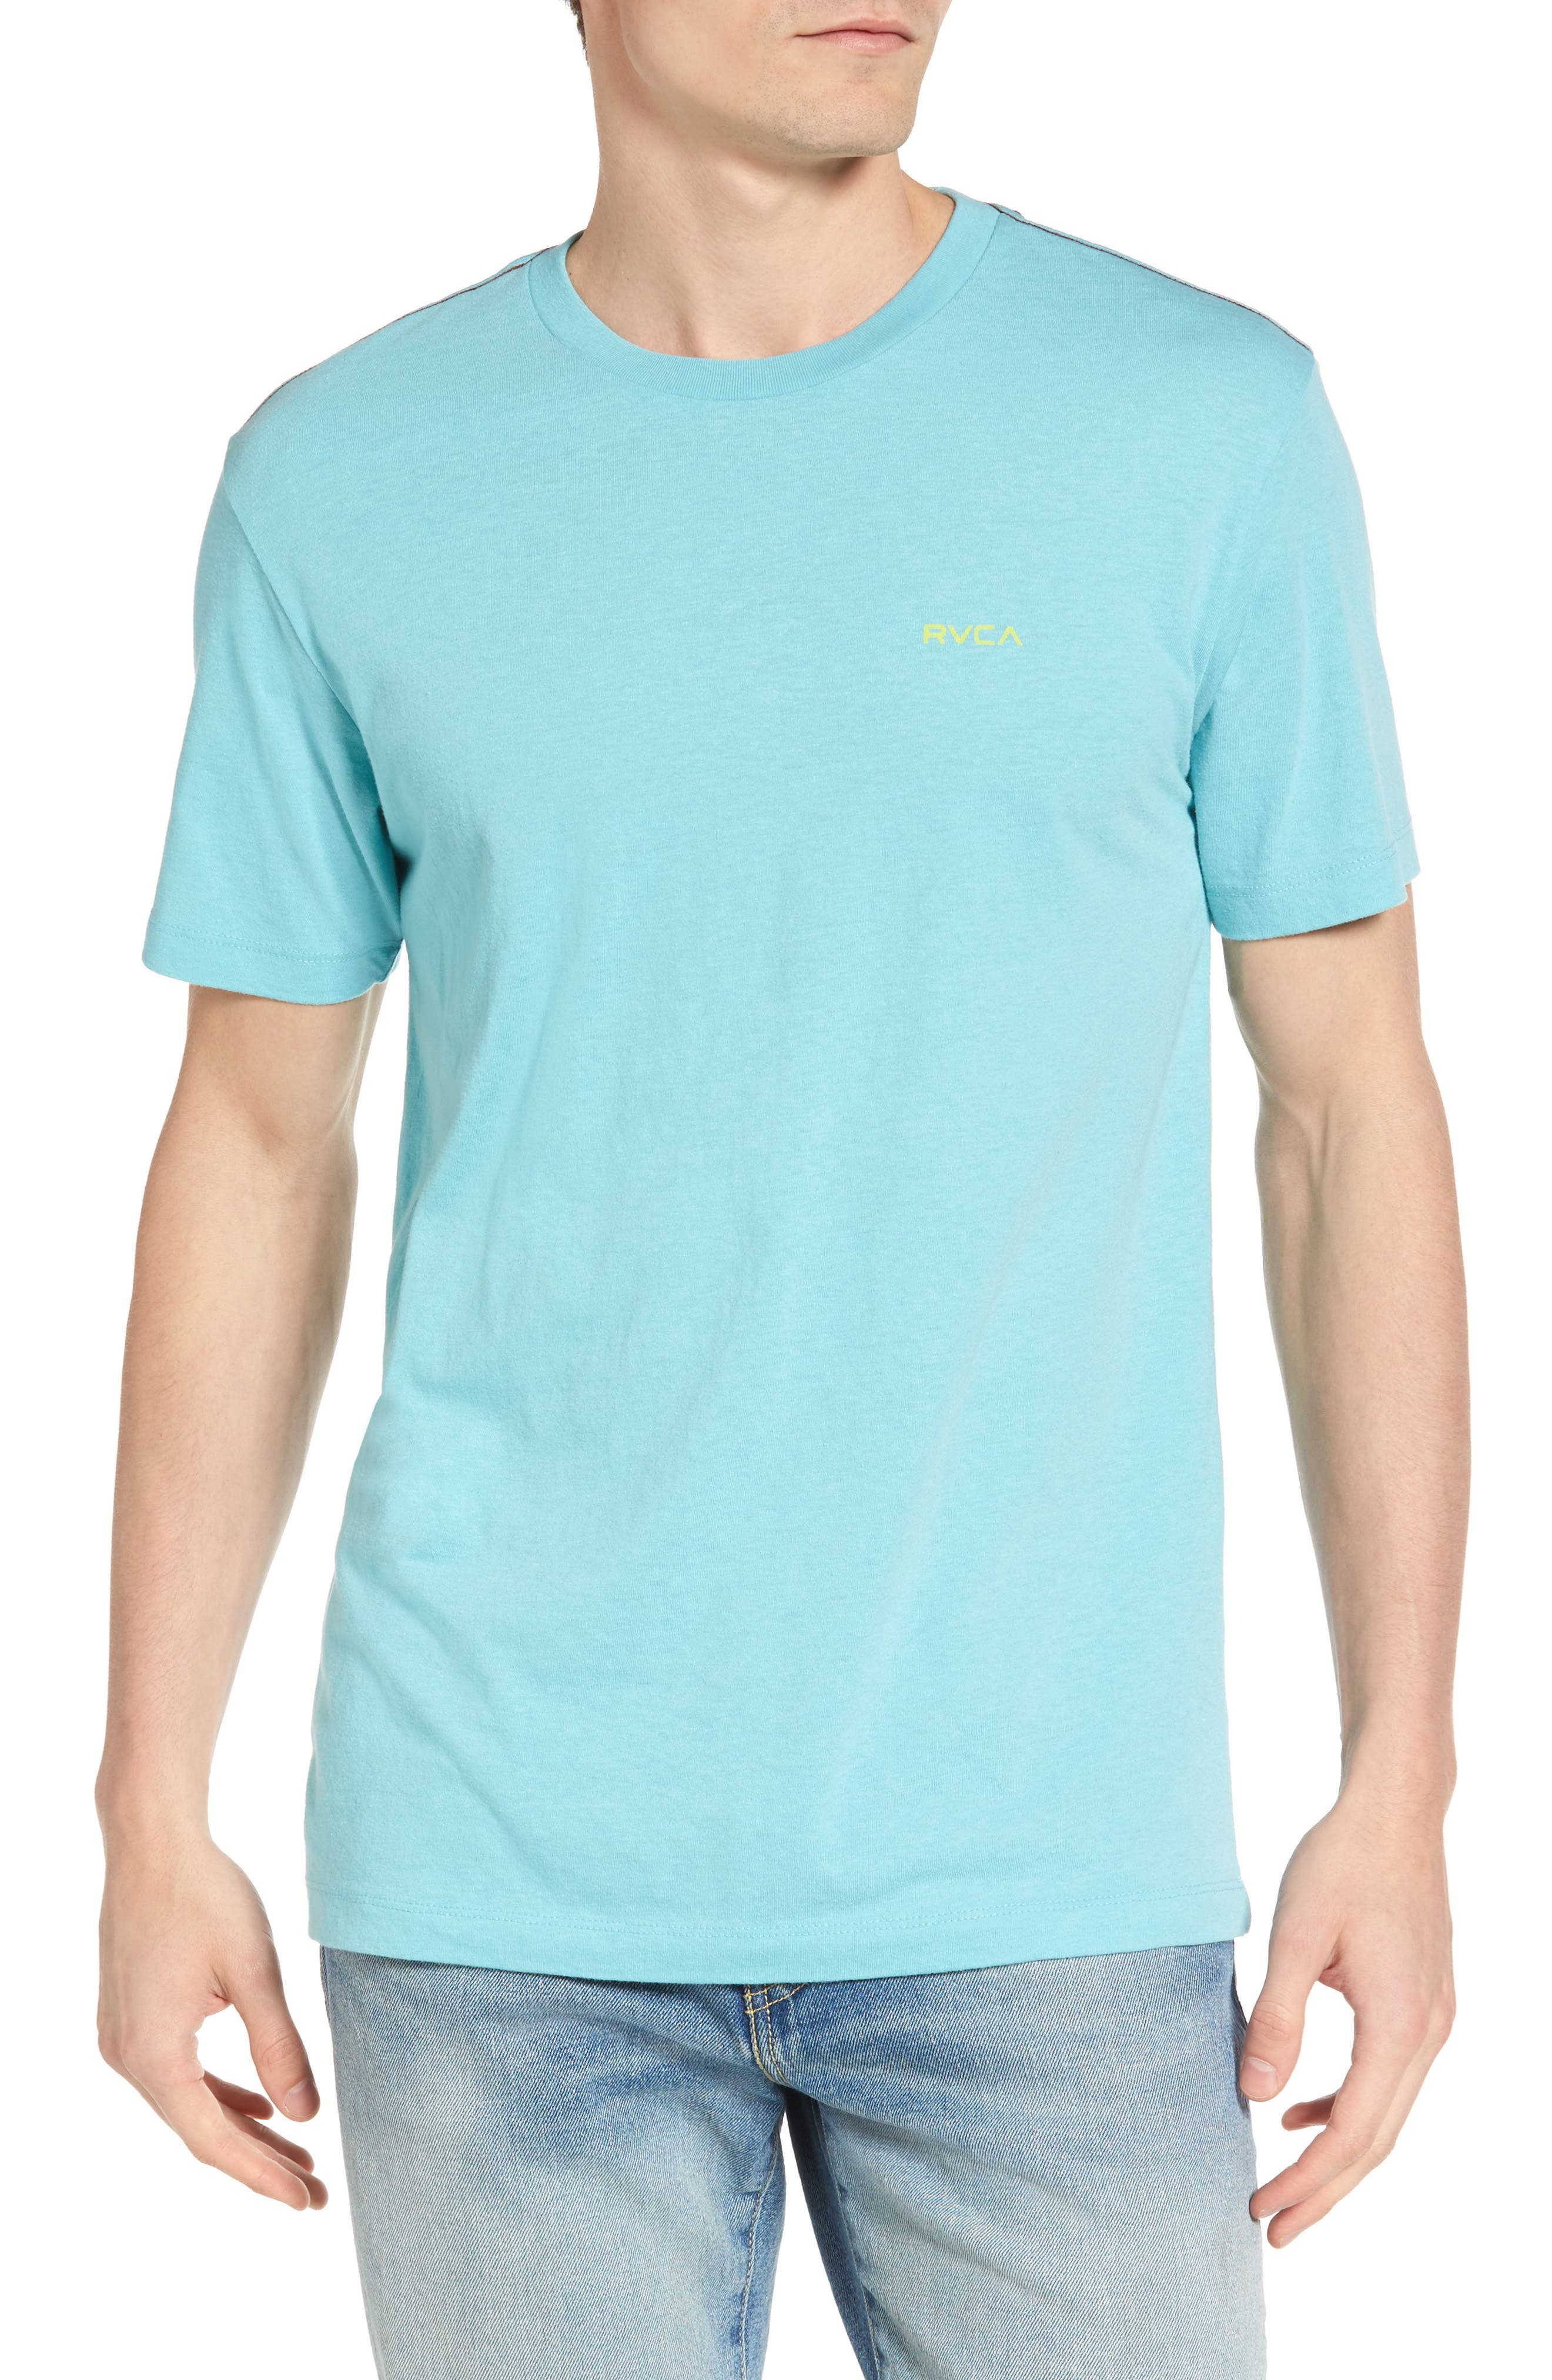 Small RVCA Chest Graphic T-Shirt,                         Main,                         color, Nile Blue